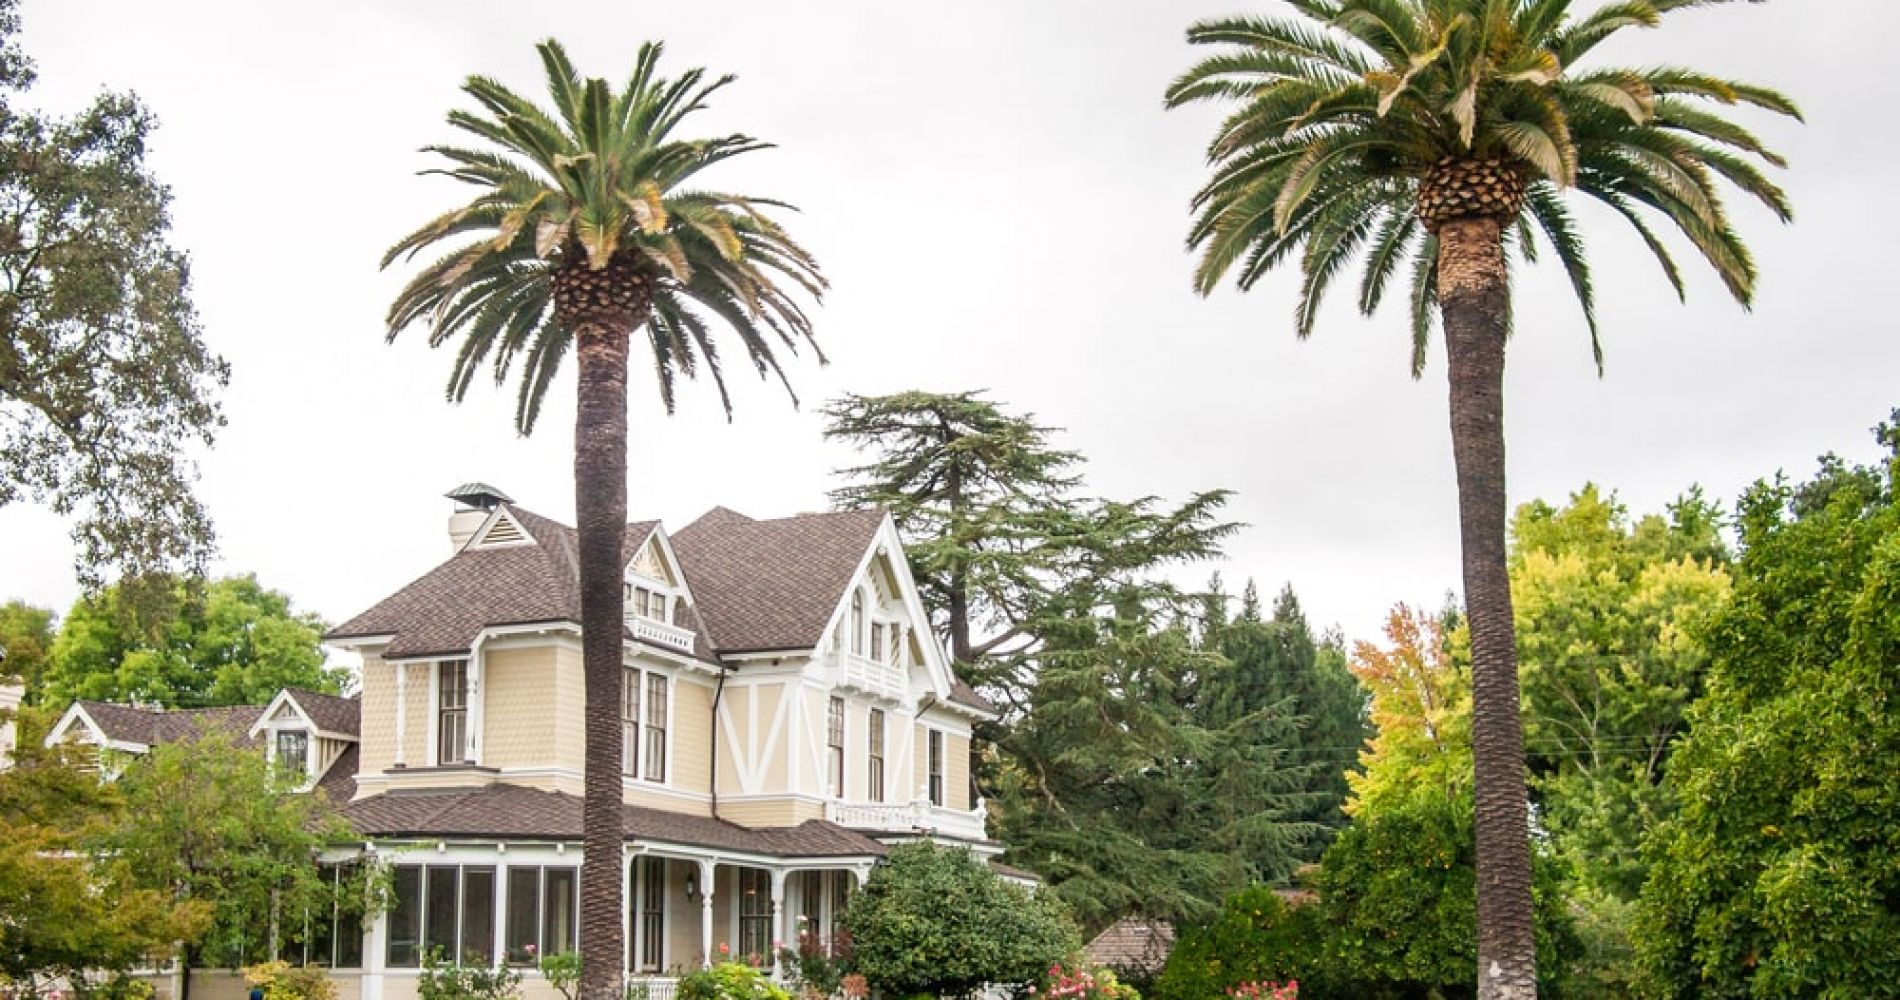 Enjoy a Free Wine Tasting at Sutter Home in Napa Valley